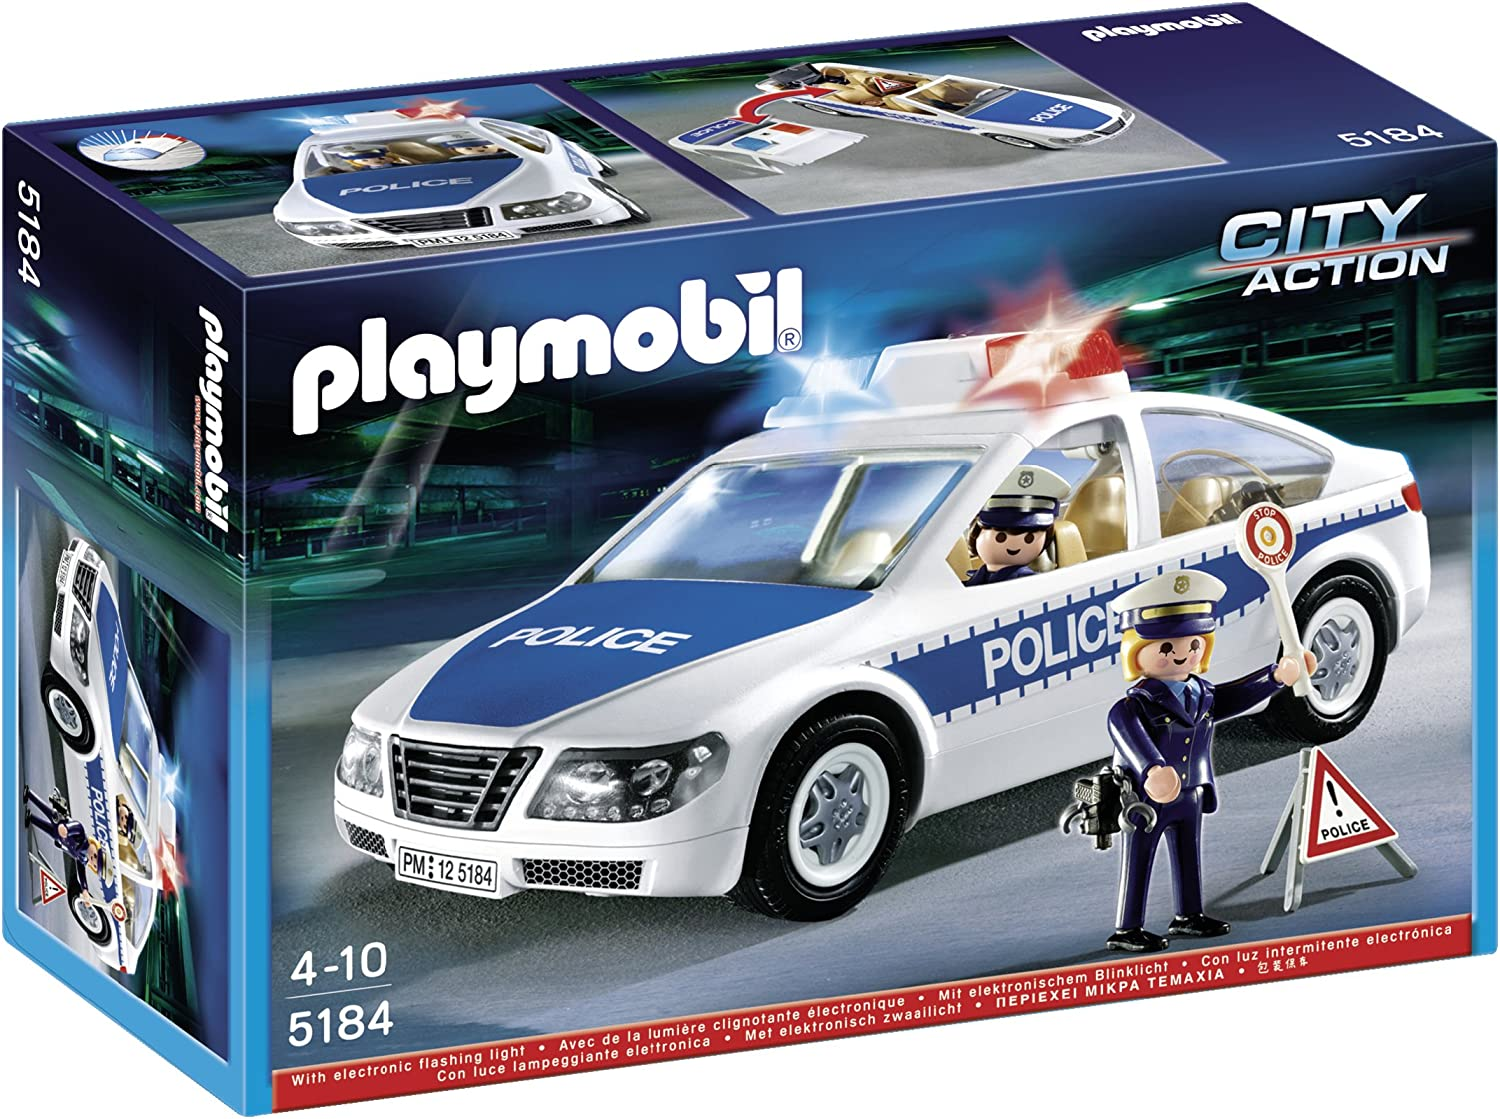 5673 FOR 4+ YEARS POLICE CRUISER PLAYMOBIL CITY ACTION